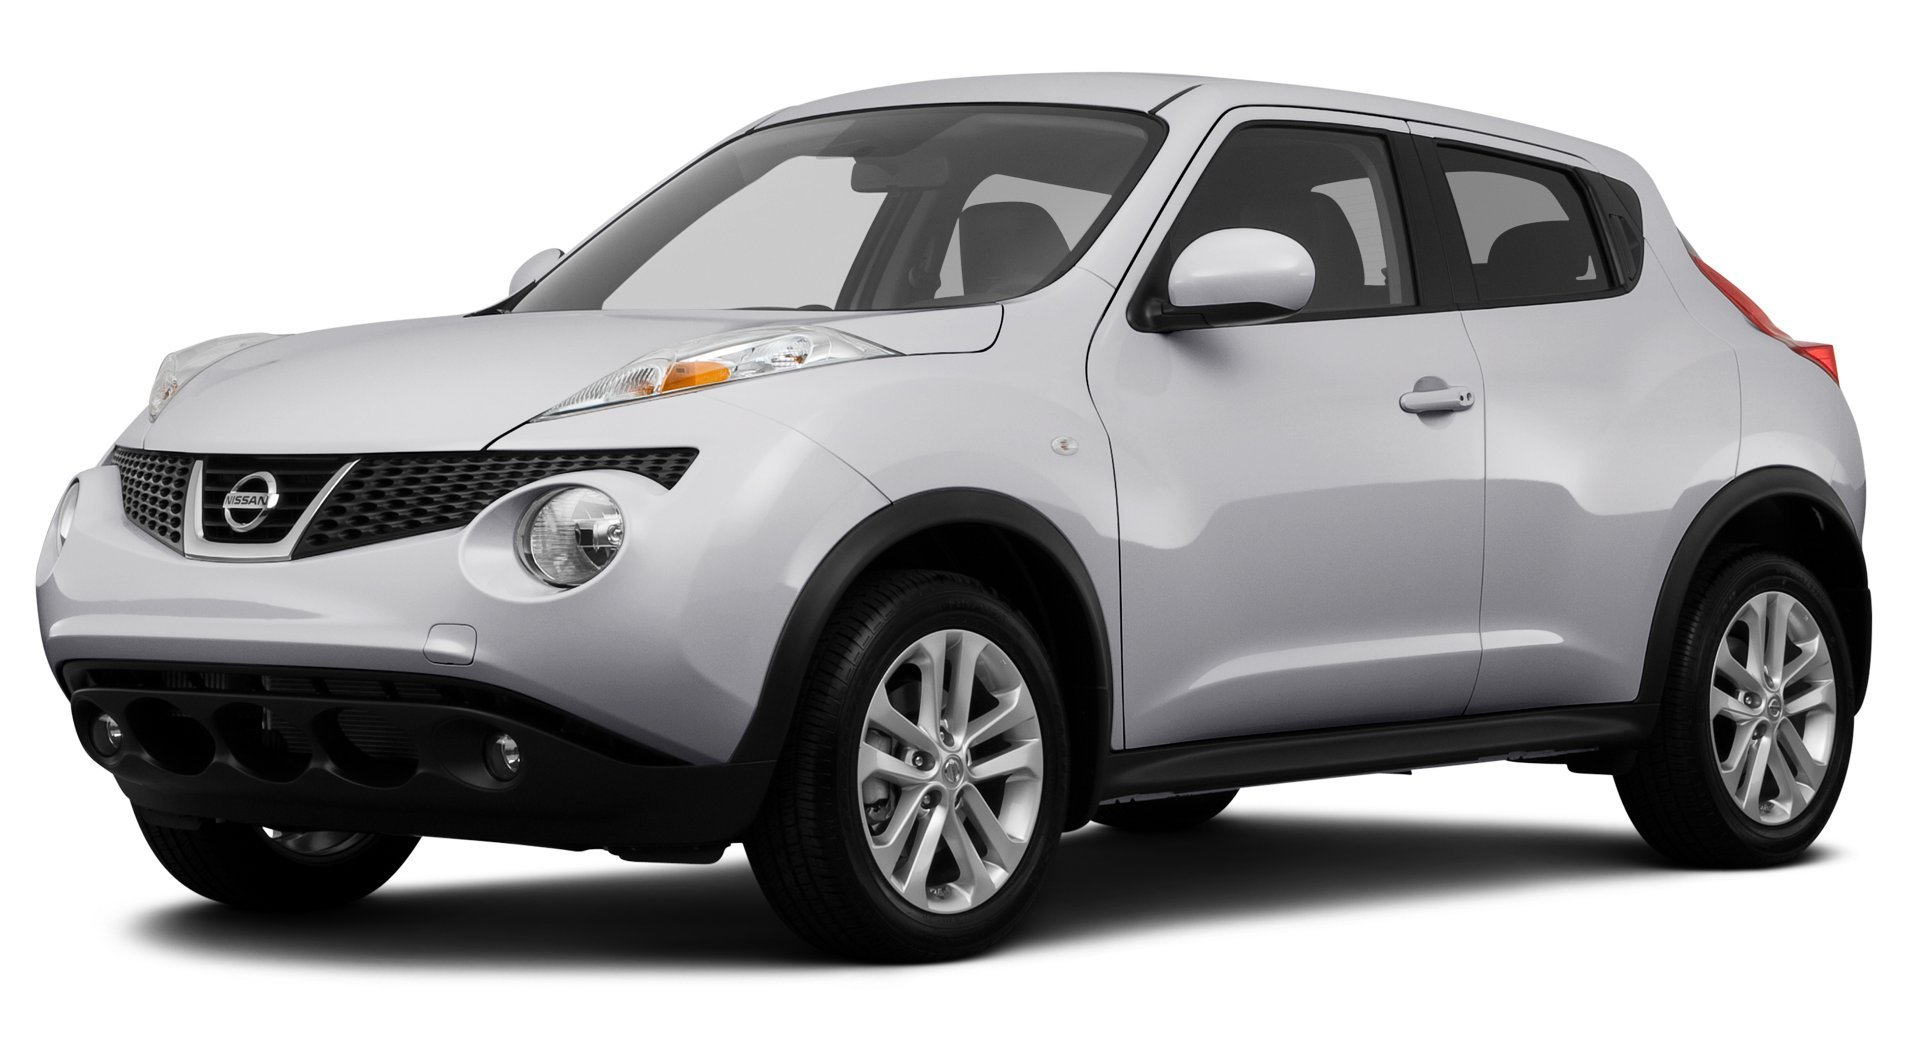 2014 nissan juke reviews images and specs vehicles. Black Bedroom Furniture Sets. Home Design Ideas